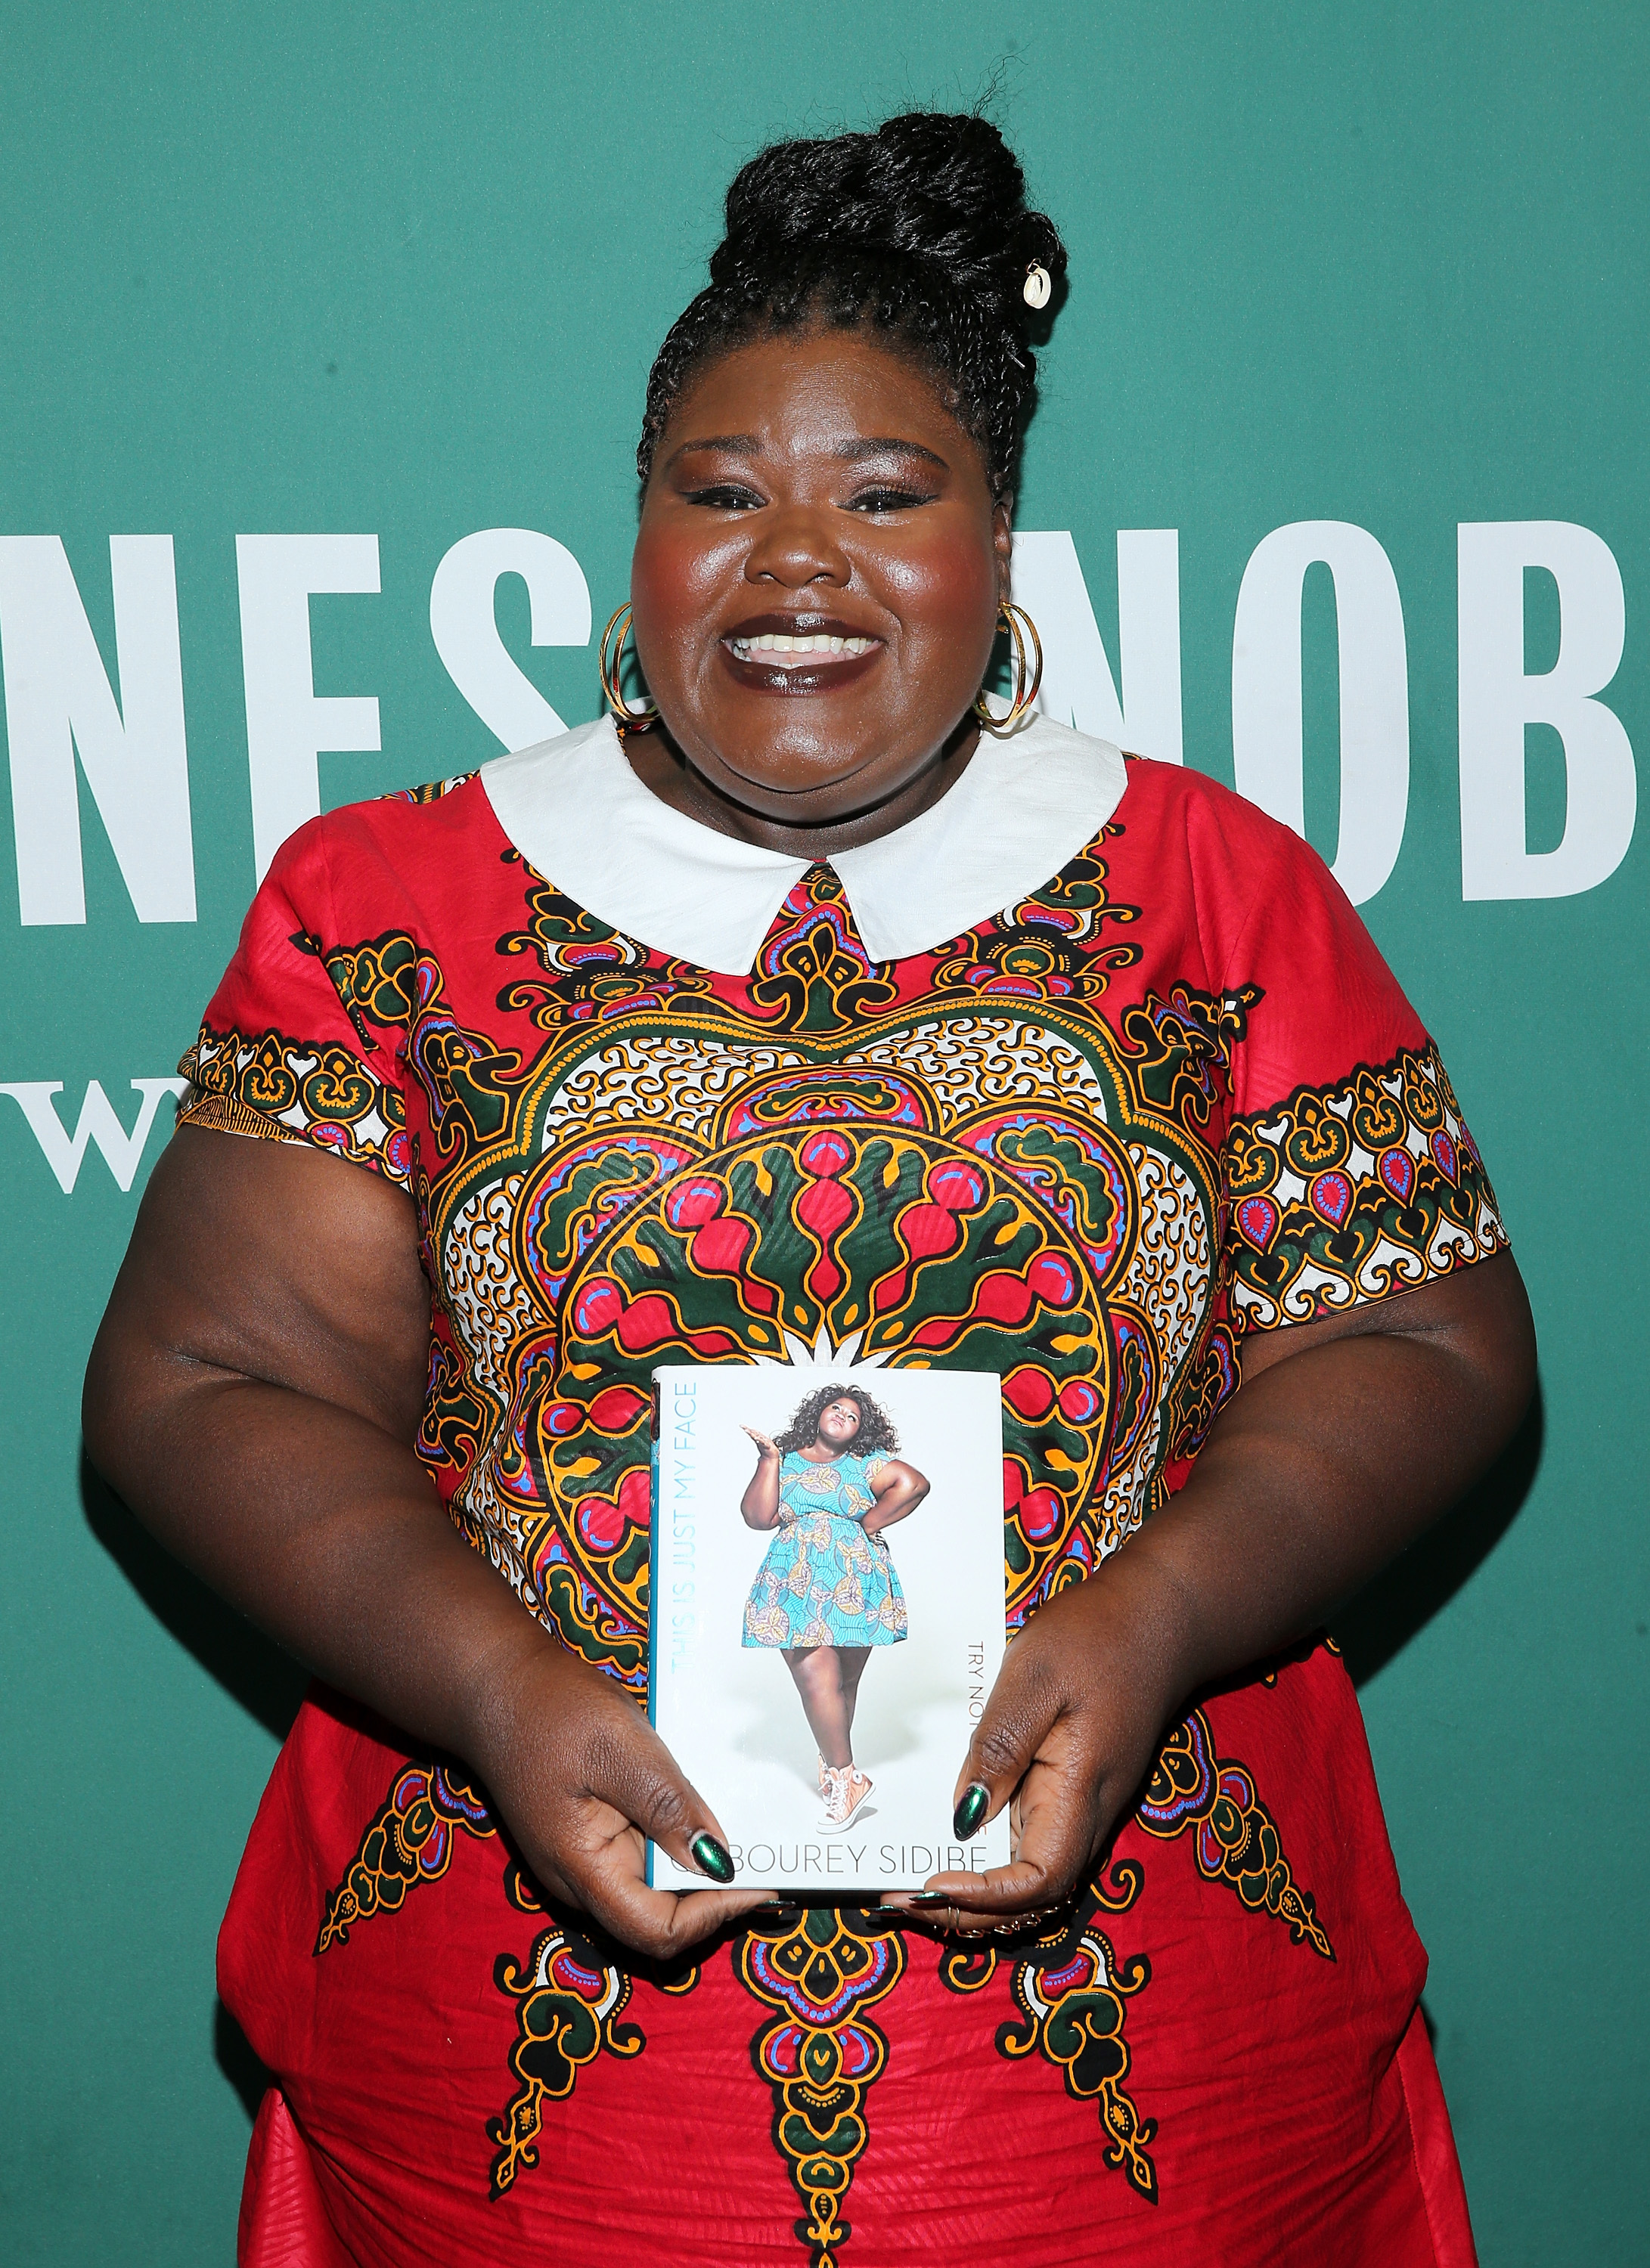 """Gabourey Sidibe poses for a photo with a copy of her new book """"This Is Just My Face: Try Not To Stare"""" during an in store appearance at Barnes & Noble Union Square in New York City on May 1, 2017."""